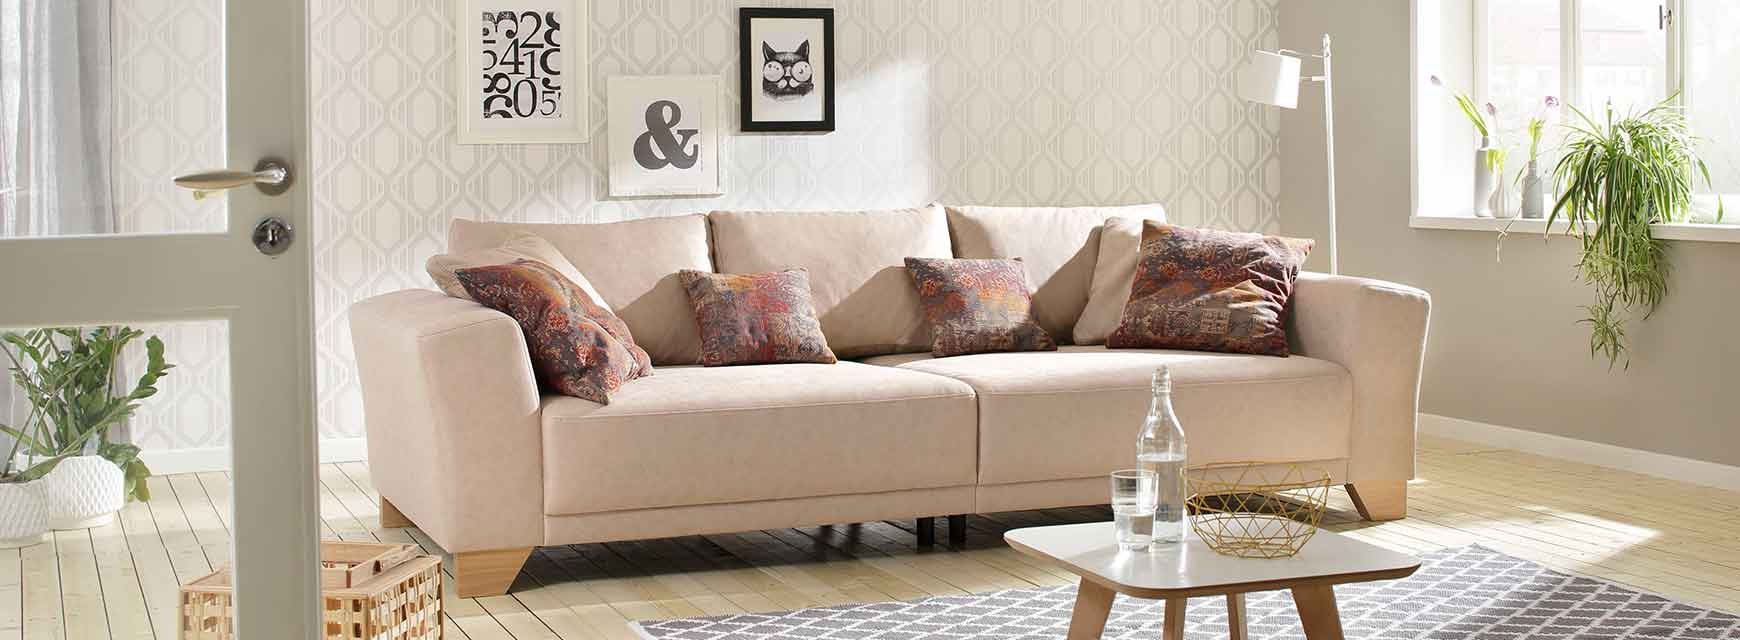 Full Size of Sofa Garnitur 2 Teilig Landhausstil Landhaus Couch Online Kaufen Naturloftde Kare Xxl U Form Eck Bett 80x200 Mit Bettfunktion 140 X 200 Stilecht Kleines Sofa Sofa Garnitur 2 Teilig